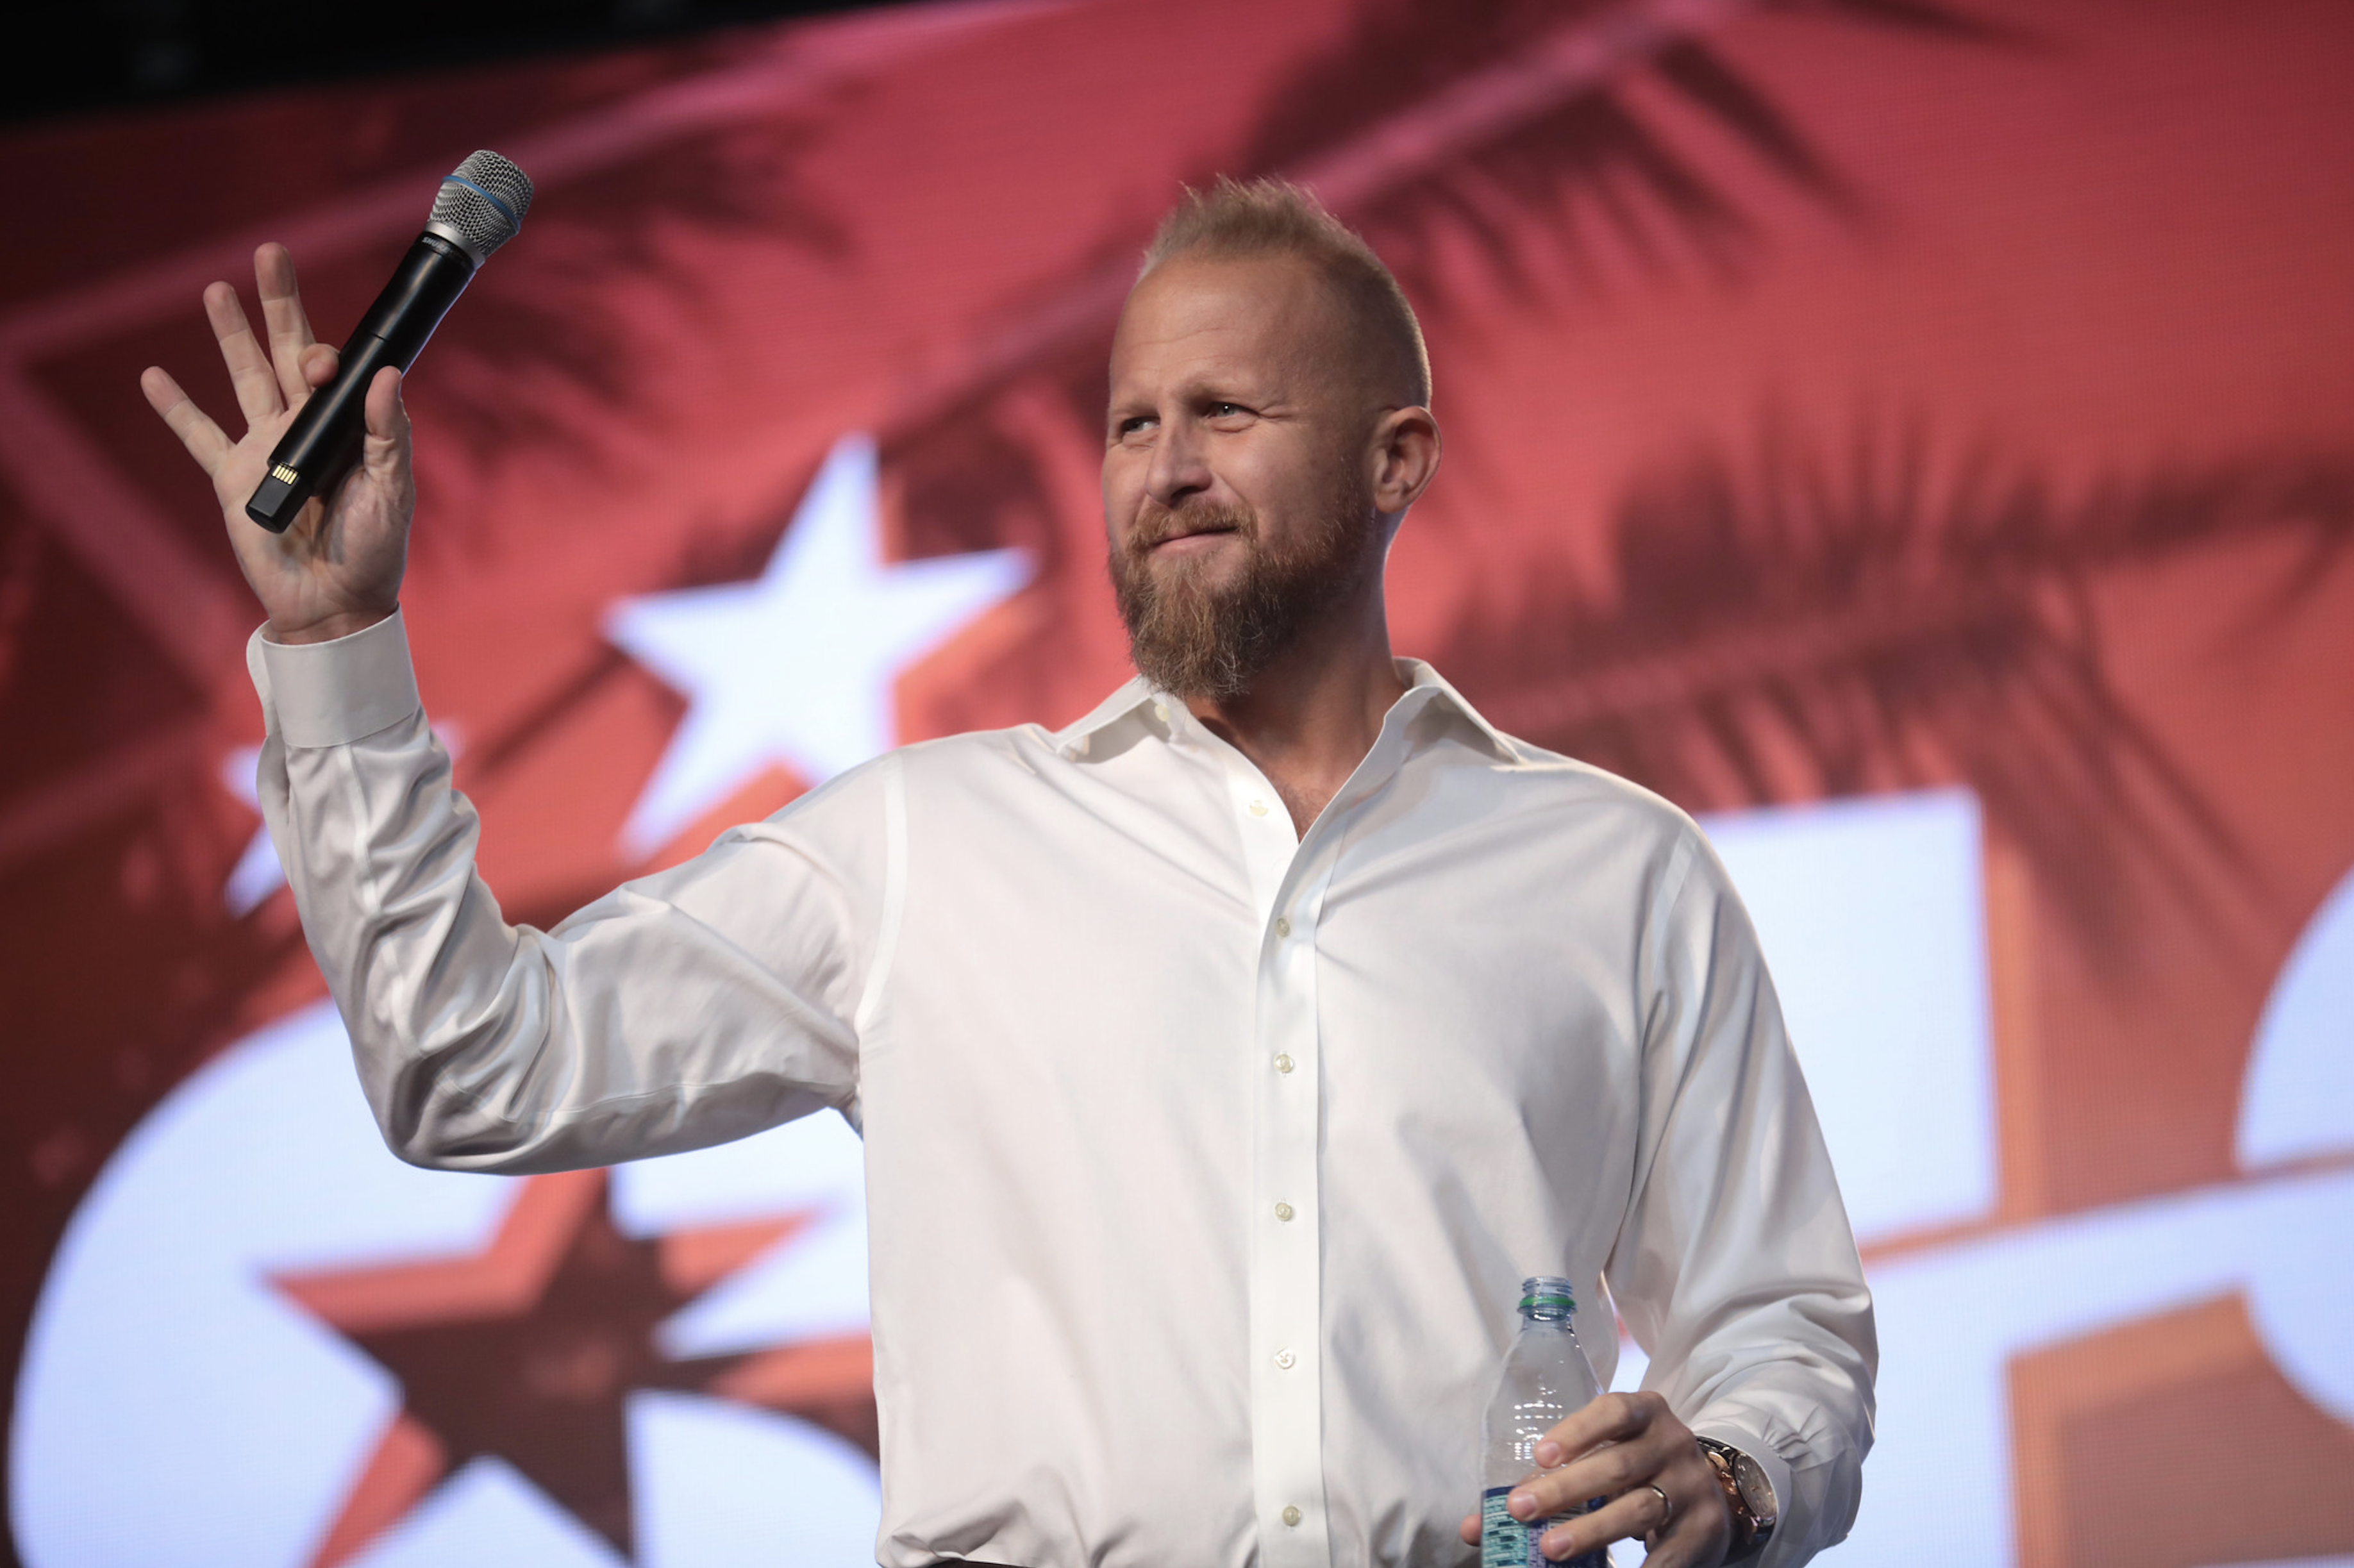 Brad Parscale Demoted From Campaign Manager to Guy Who Hands Glass of Water to Trump When He Wants to Prove He Knows How to Drink Water